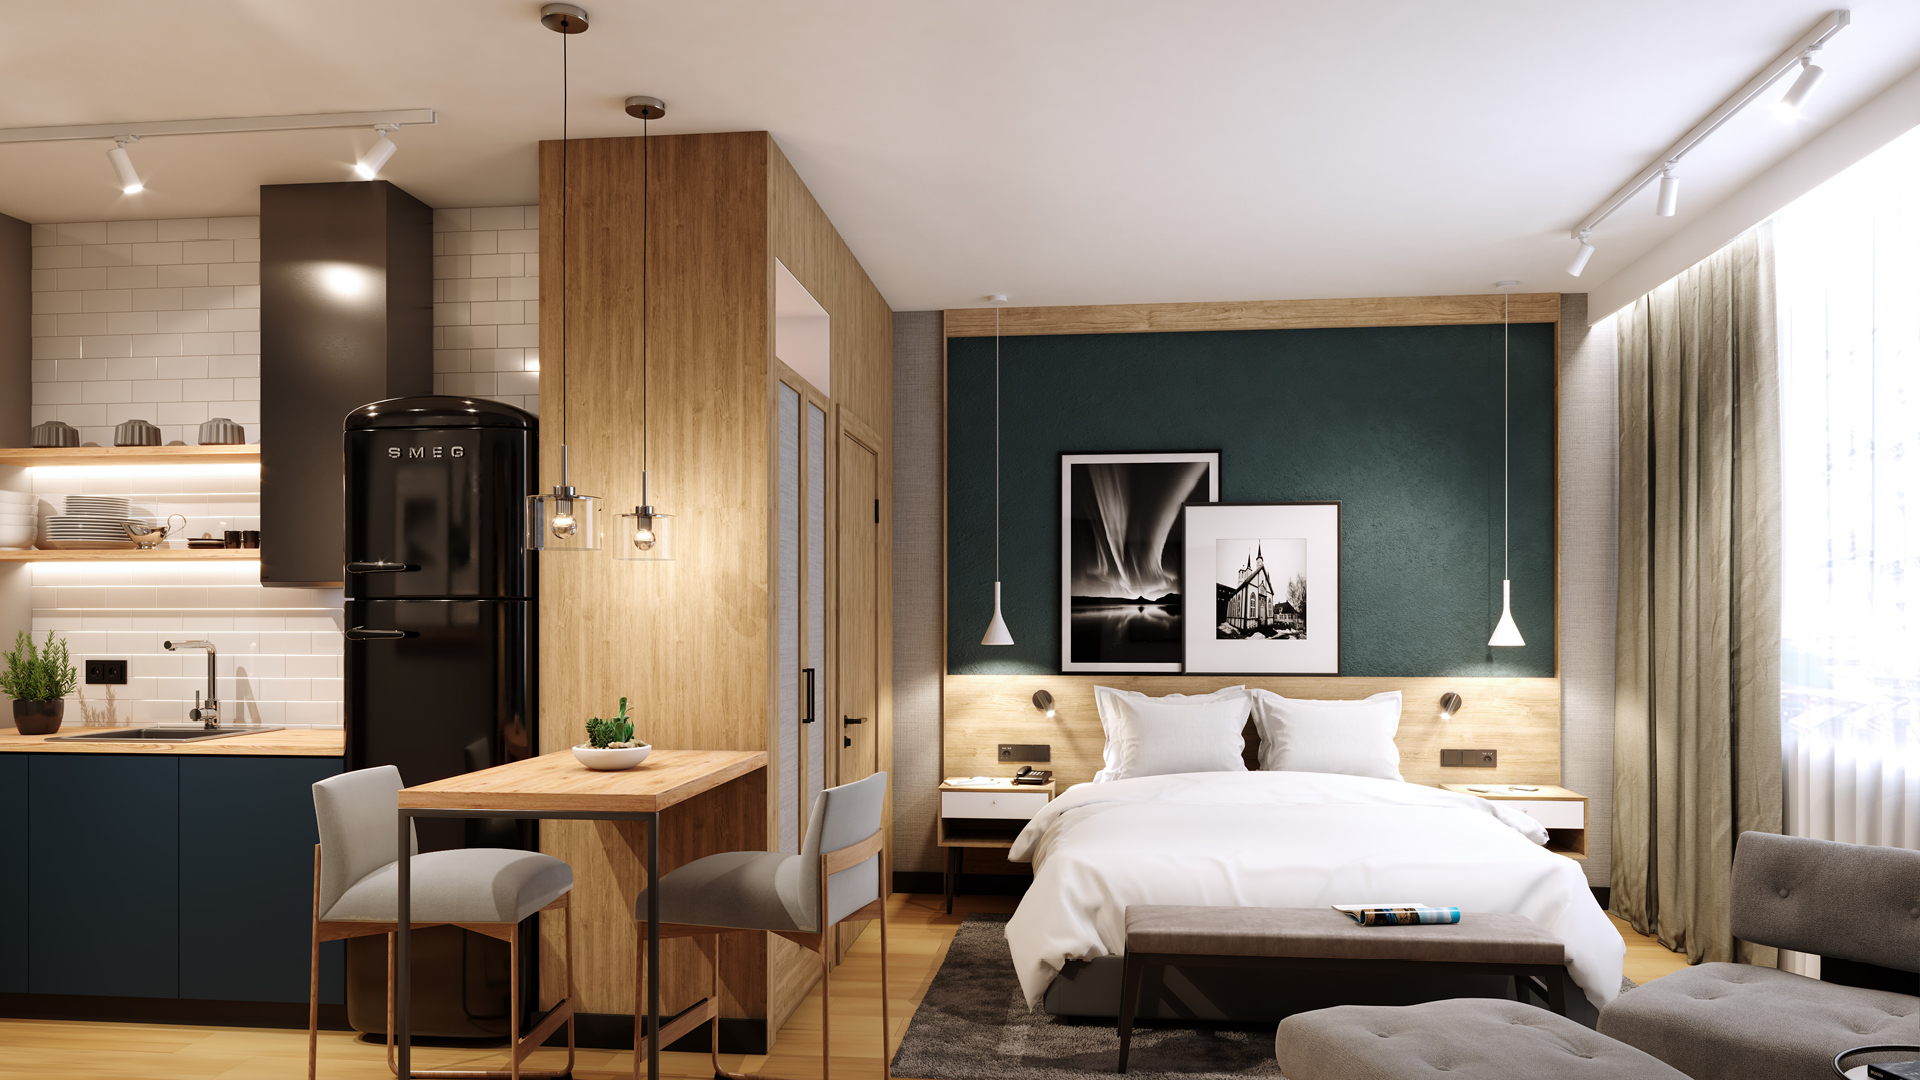 Radisson Hotel Group strengthens its extended stay value proposition and ambitiously grows its serviced apartments portfolio across EMEA